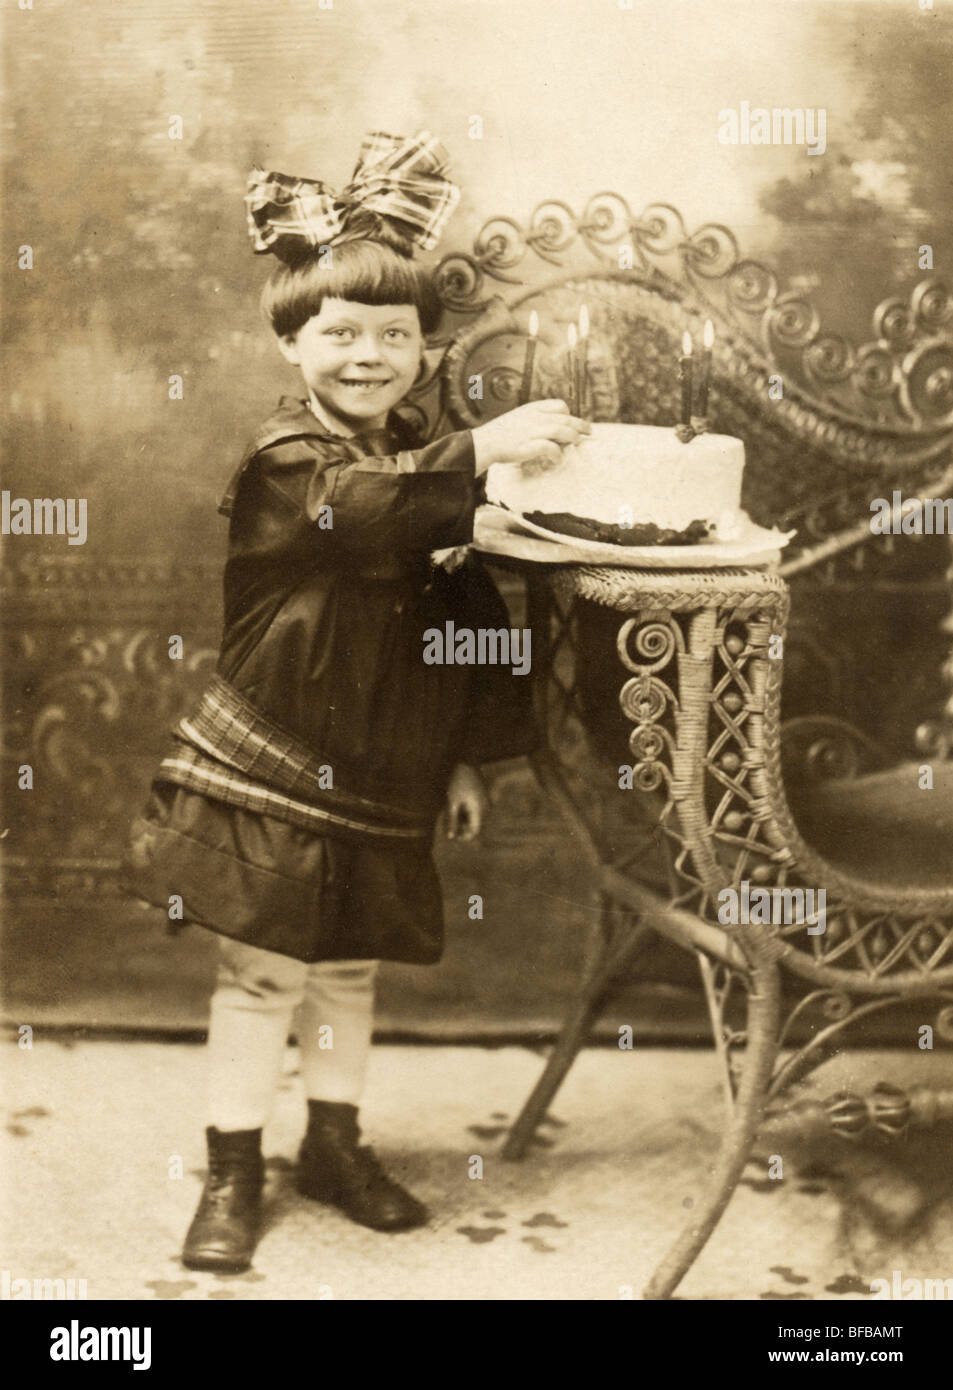 Enjoyable Five Year Old Girl With Birthday Cake Stock Photo 26680104 Alamy Personalised Birthday Cards Arneslily Jamesorg